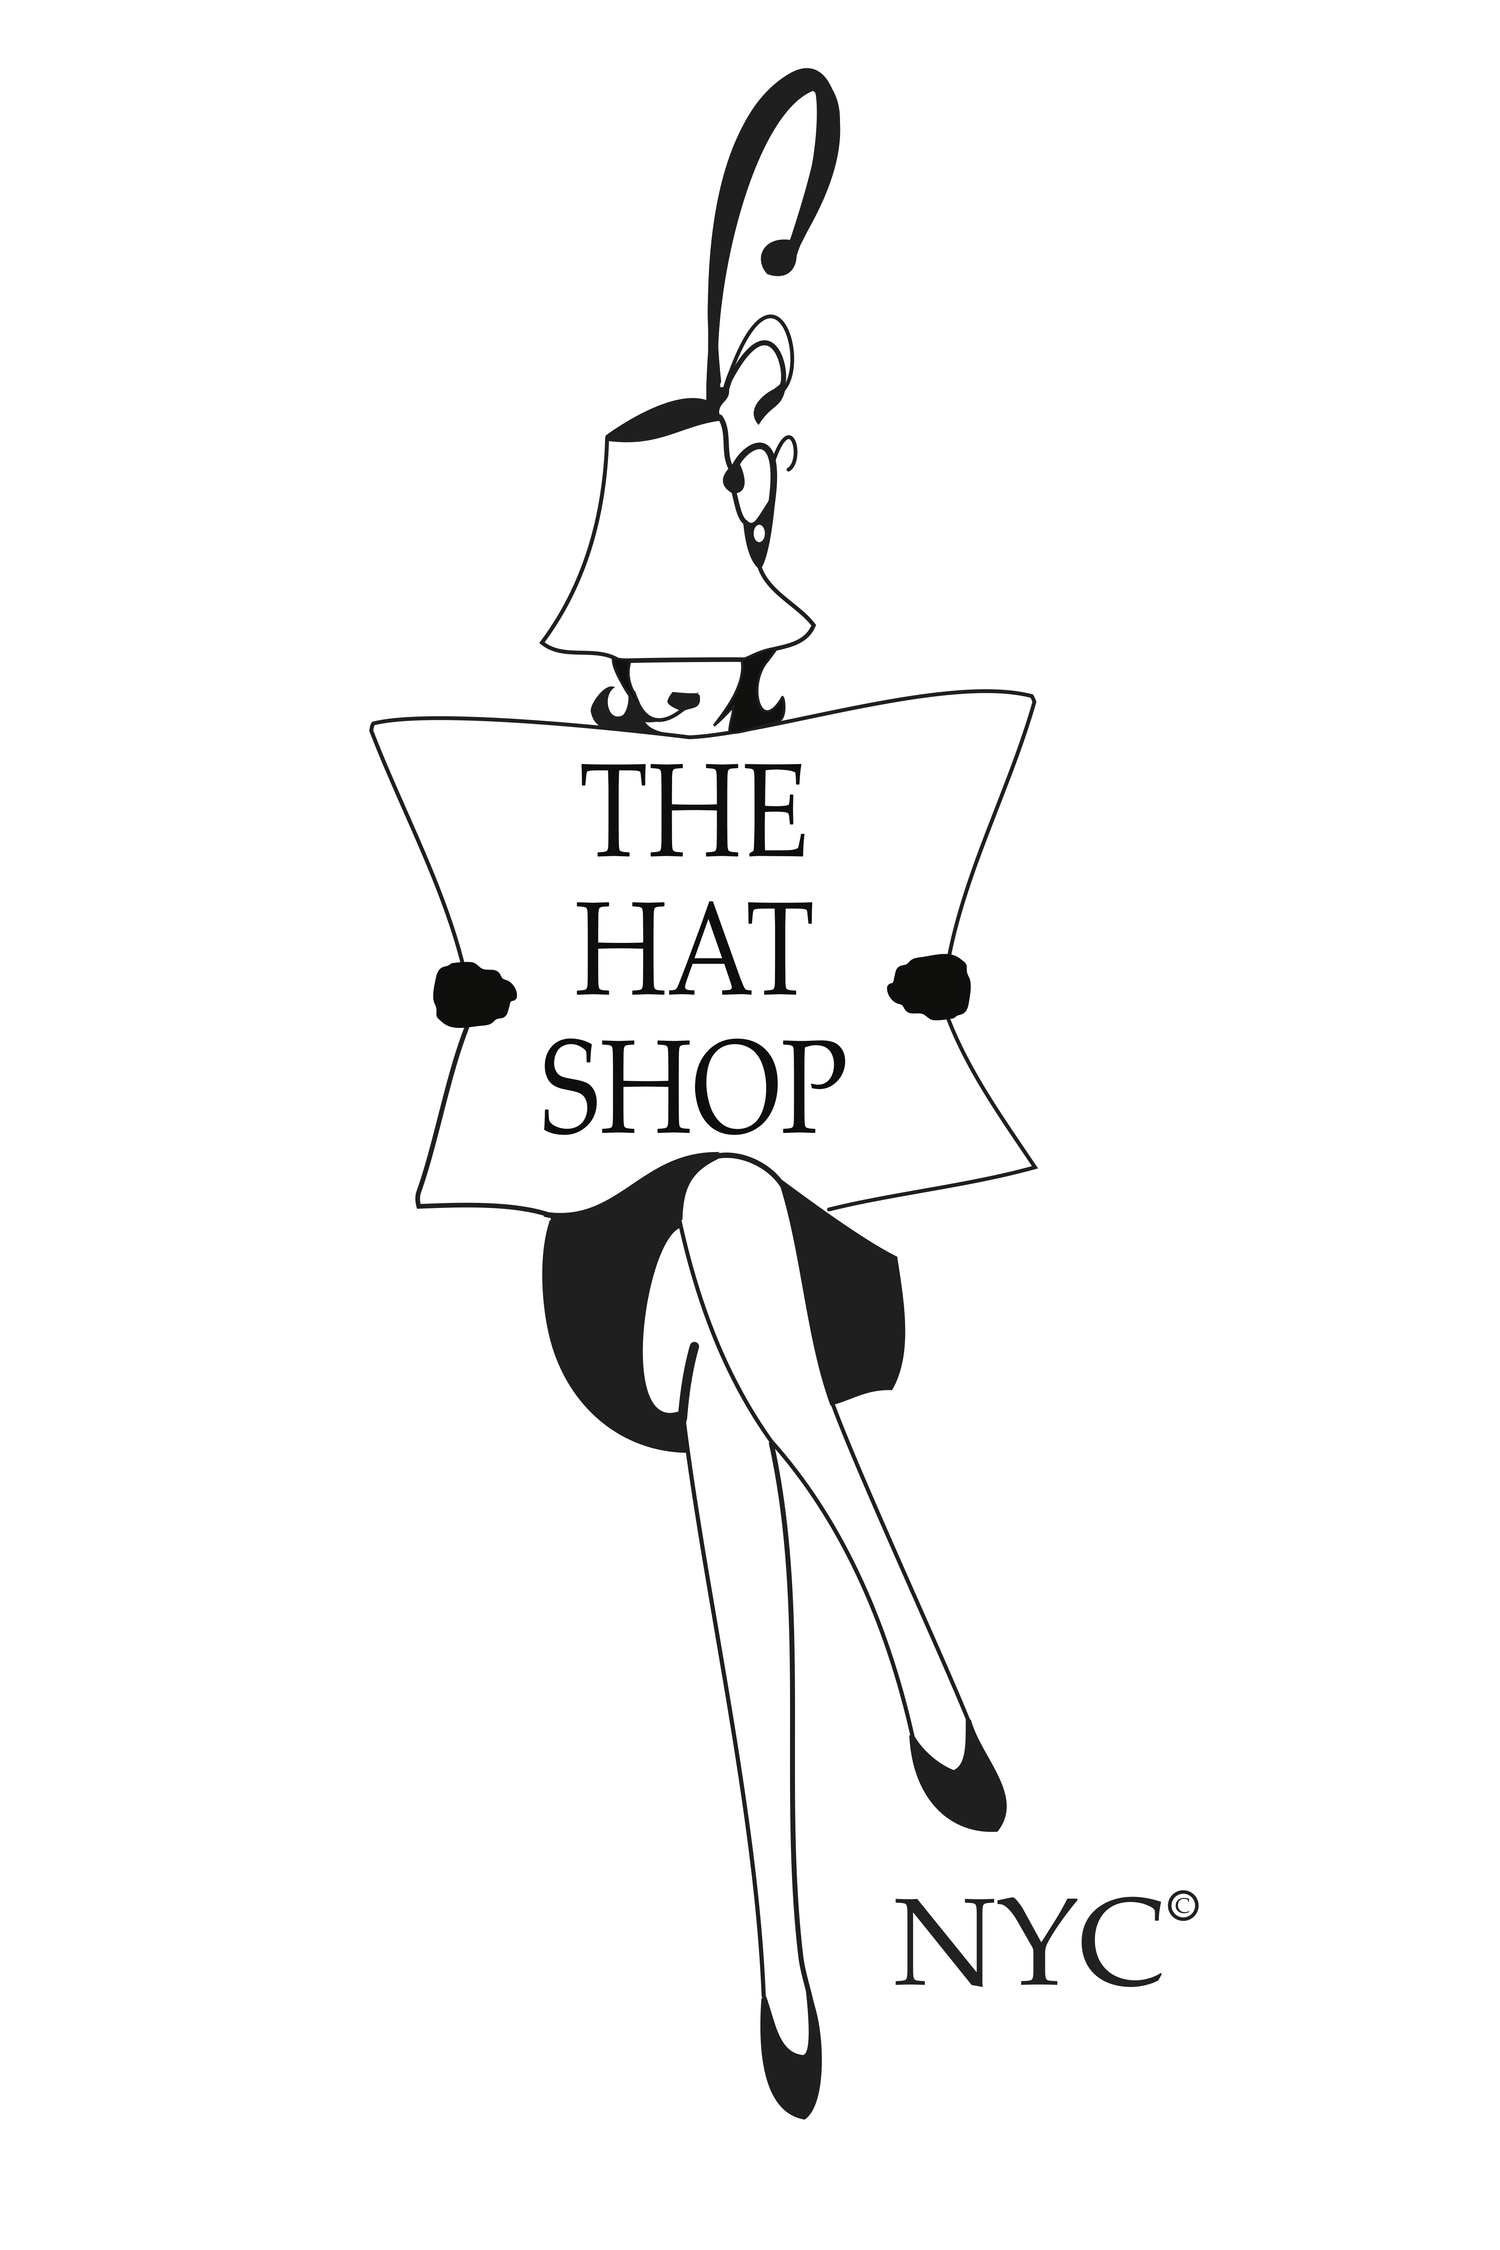 CONTACT — The Hat Shop 81103c54a13